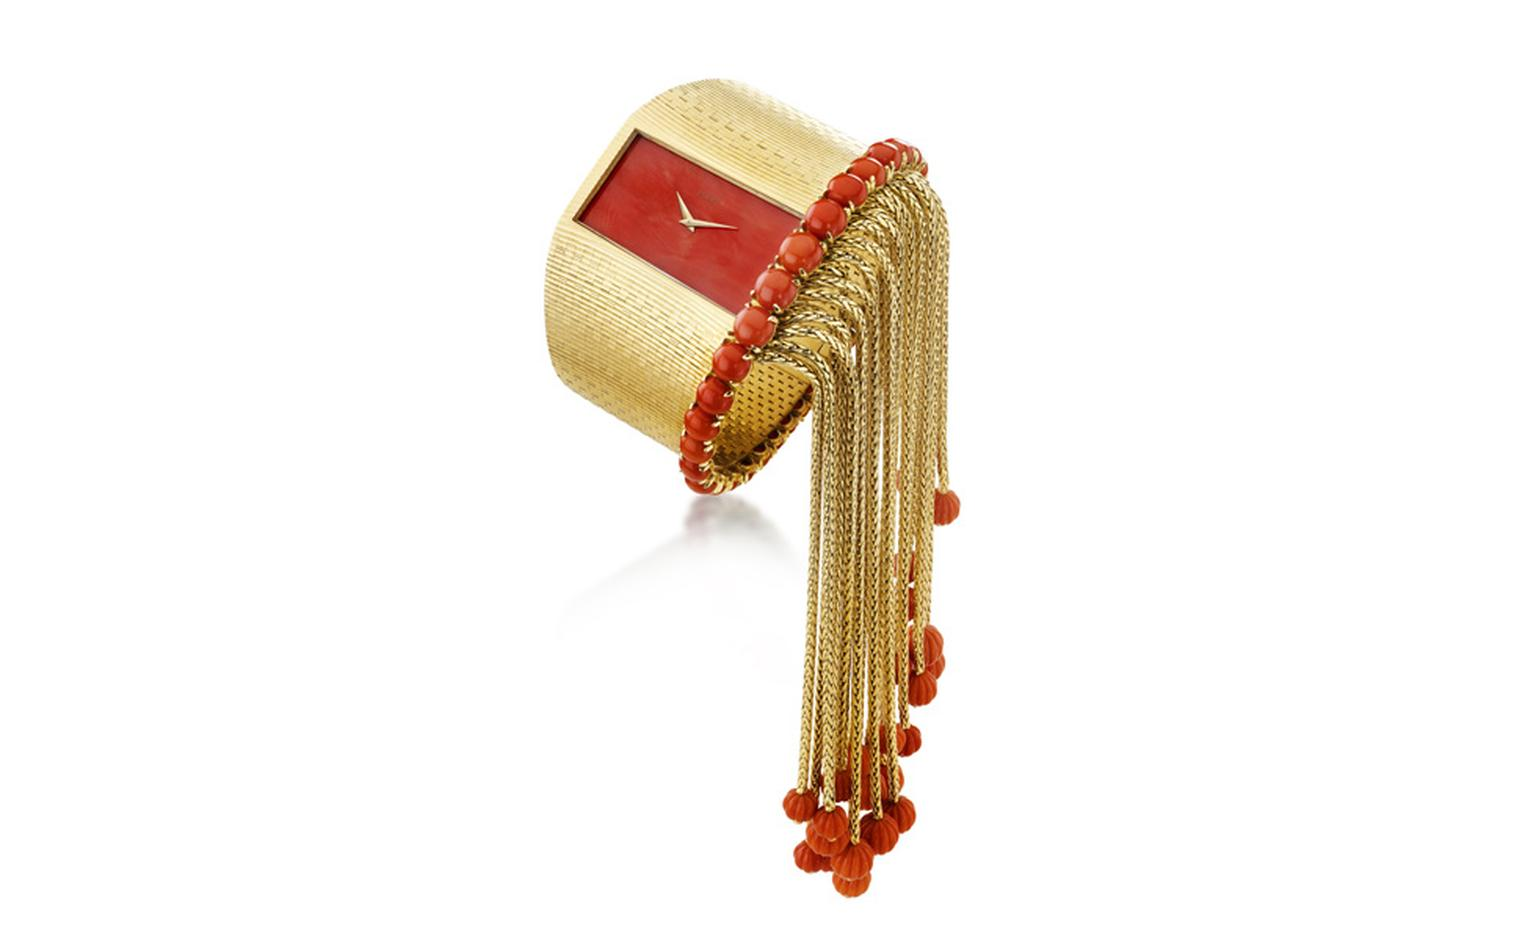 Yellow gold and red coral watch by Piaget made in 1974 with the Piaget ultra-thin Calibre 9P movement.